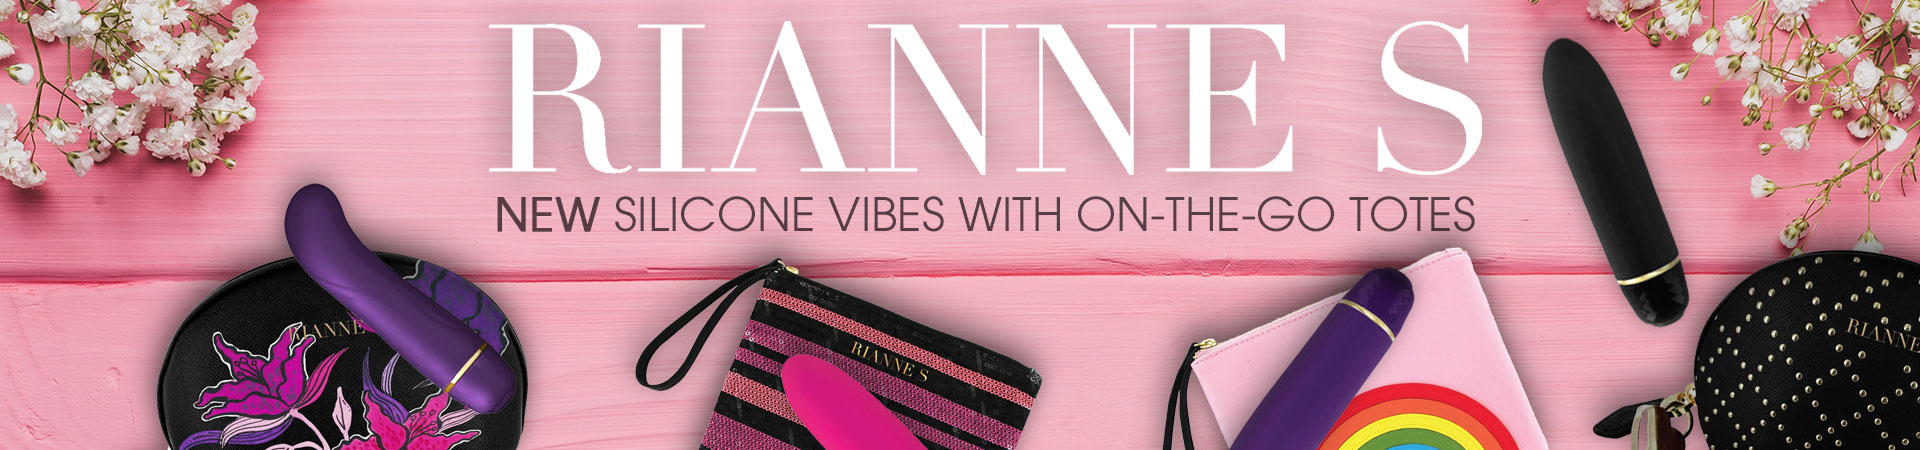 NEW Rianne S Silicone Mini Vibes With On-The-Go Totes!